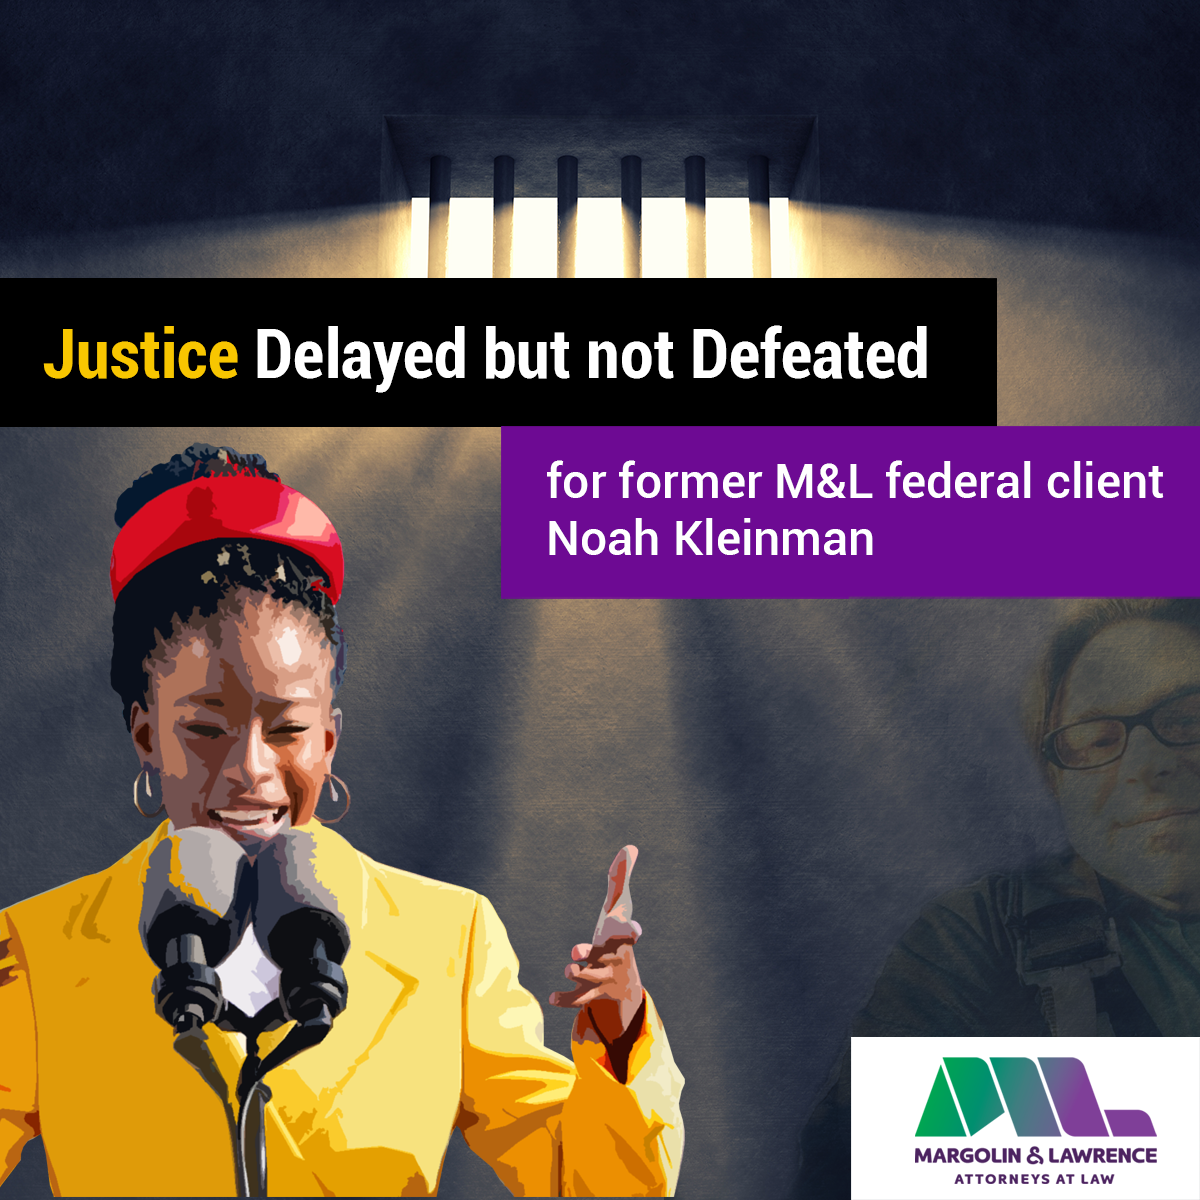 Justice 'delayed but not defeated' for former M&L federal client Noah Kleinman